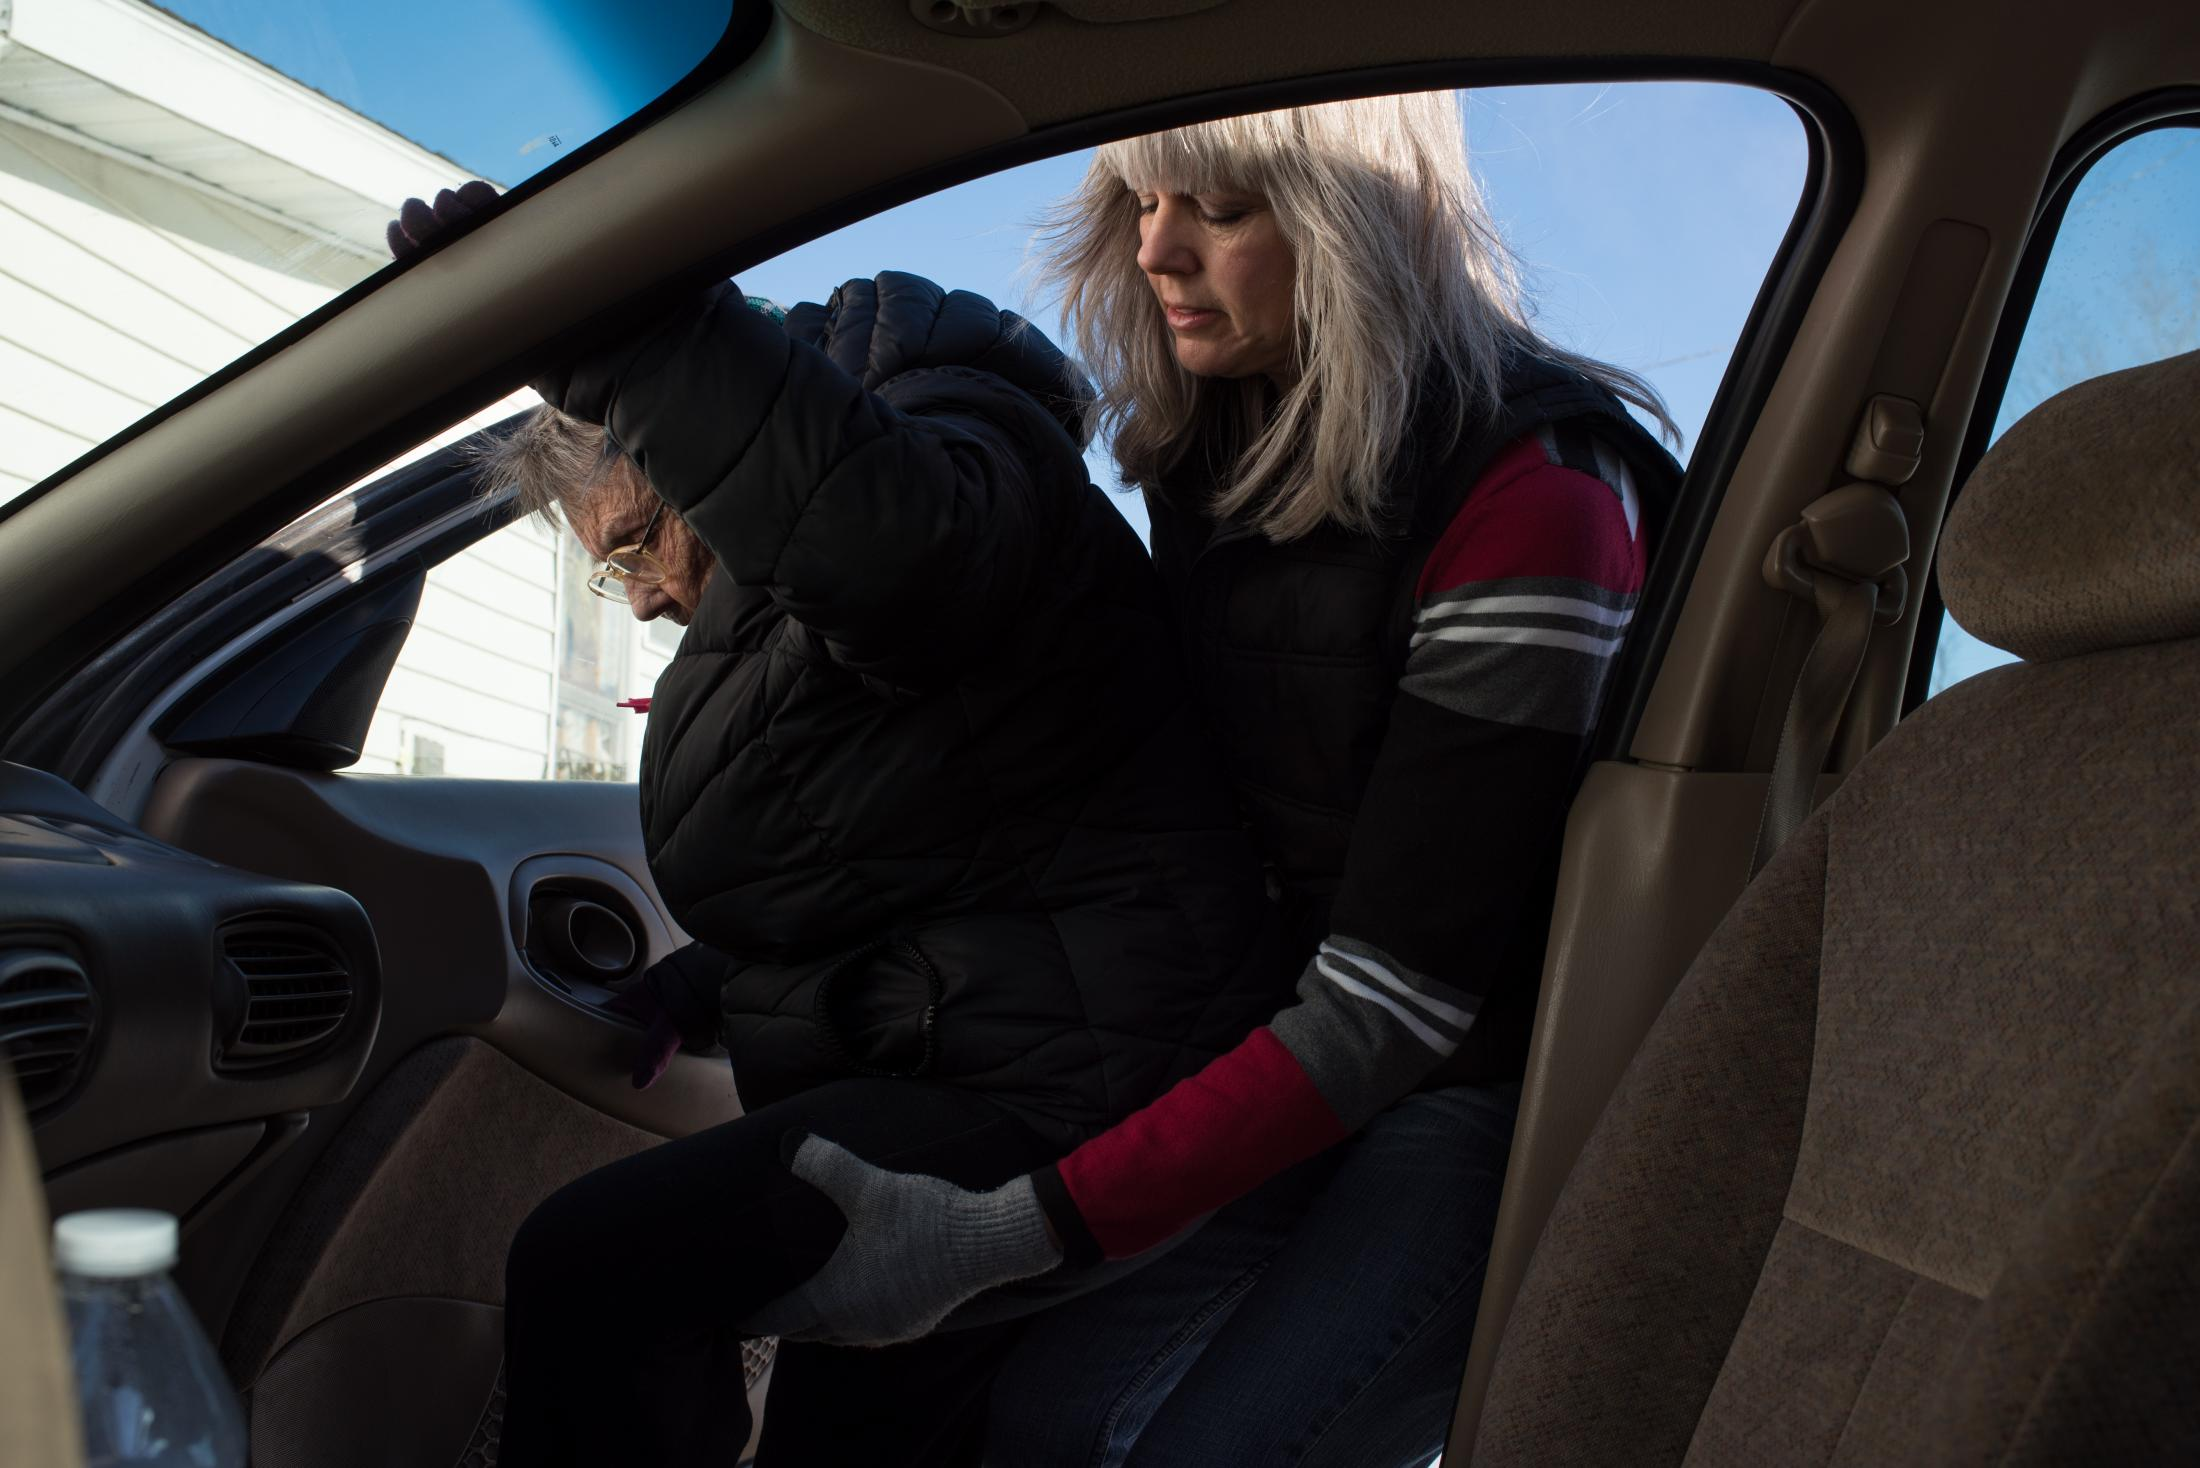 Roxanne Rupe, Coolville's librarian, helps her mother-in-law,  Mary Rupe, into Roxanne's vehicle in February 2015. Mary would go on to spend the afternoon with her son so that she wouldn't be alone at her own house.